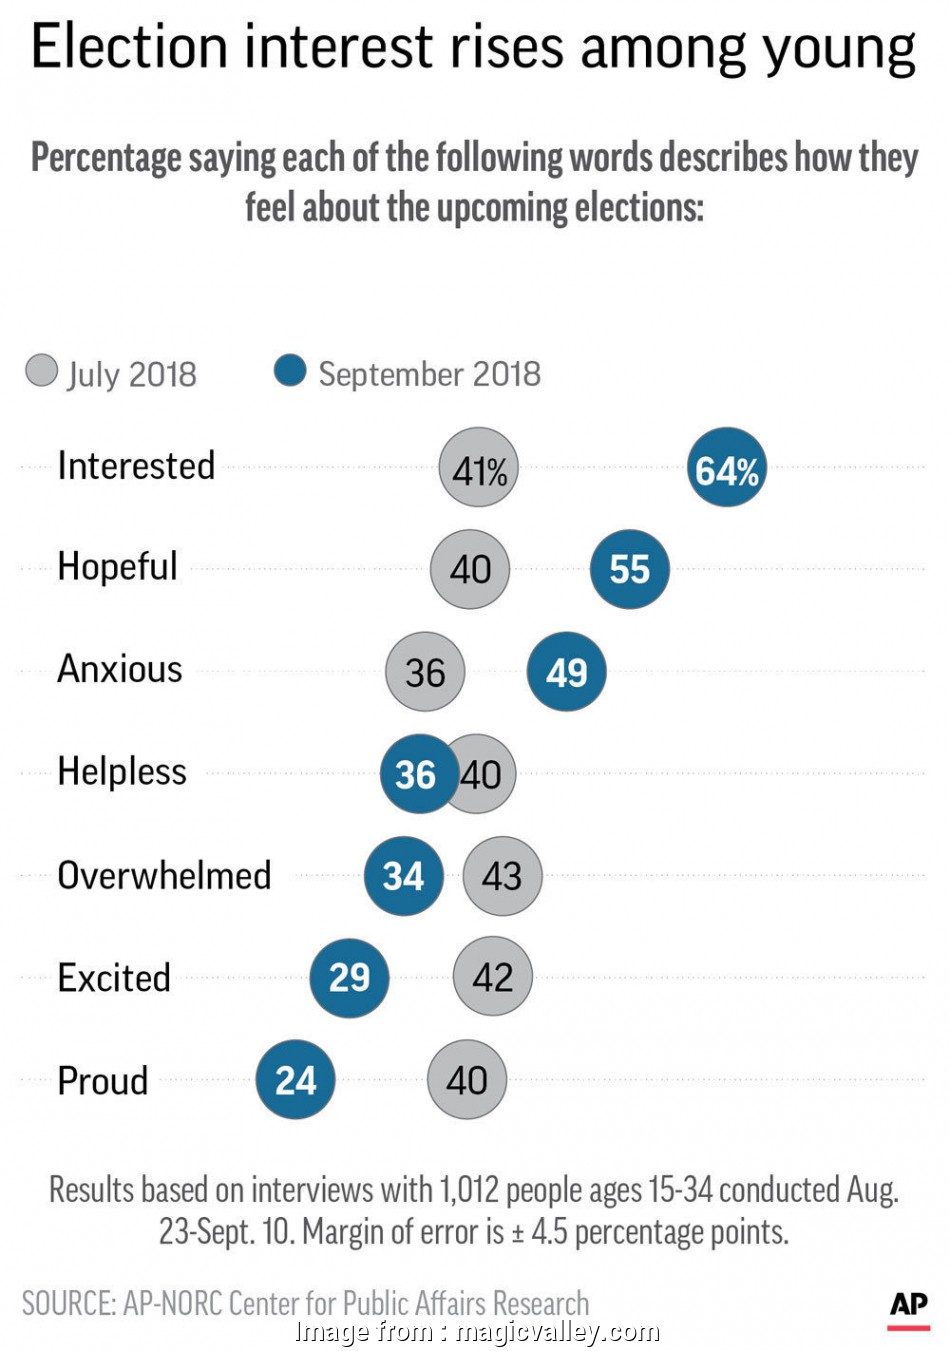 live wire electric burley idaho AP-NORC/MTV Poll: Young people feel anxious about election Live Wire Electric Burley Idaho Creative AP-NORC/MTV Poll: Young People Feel Anxious About Election Ideas